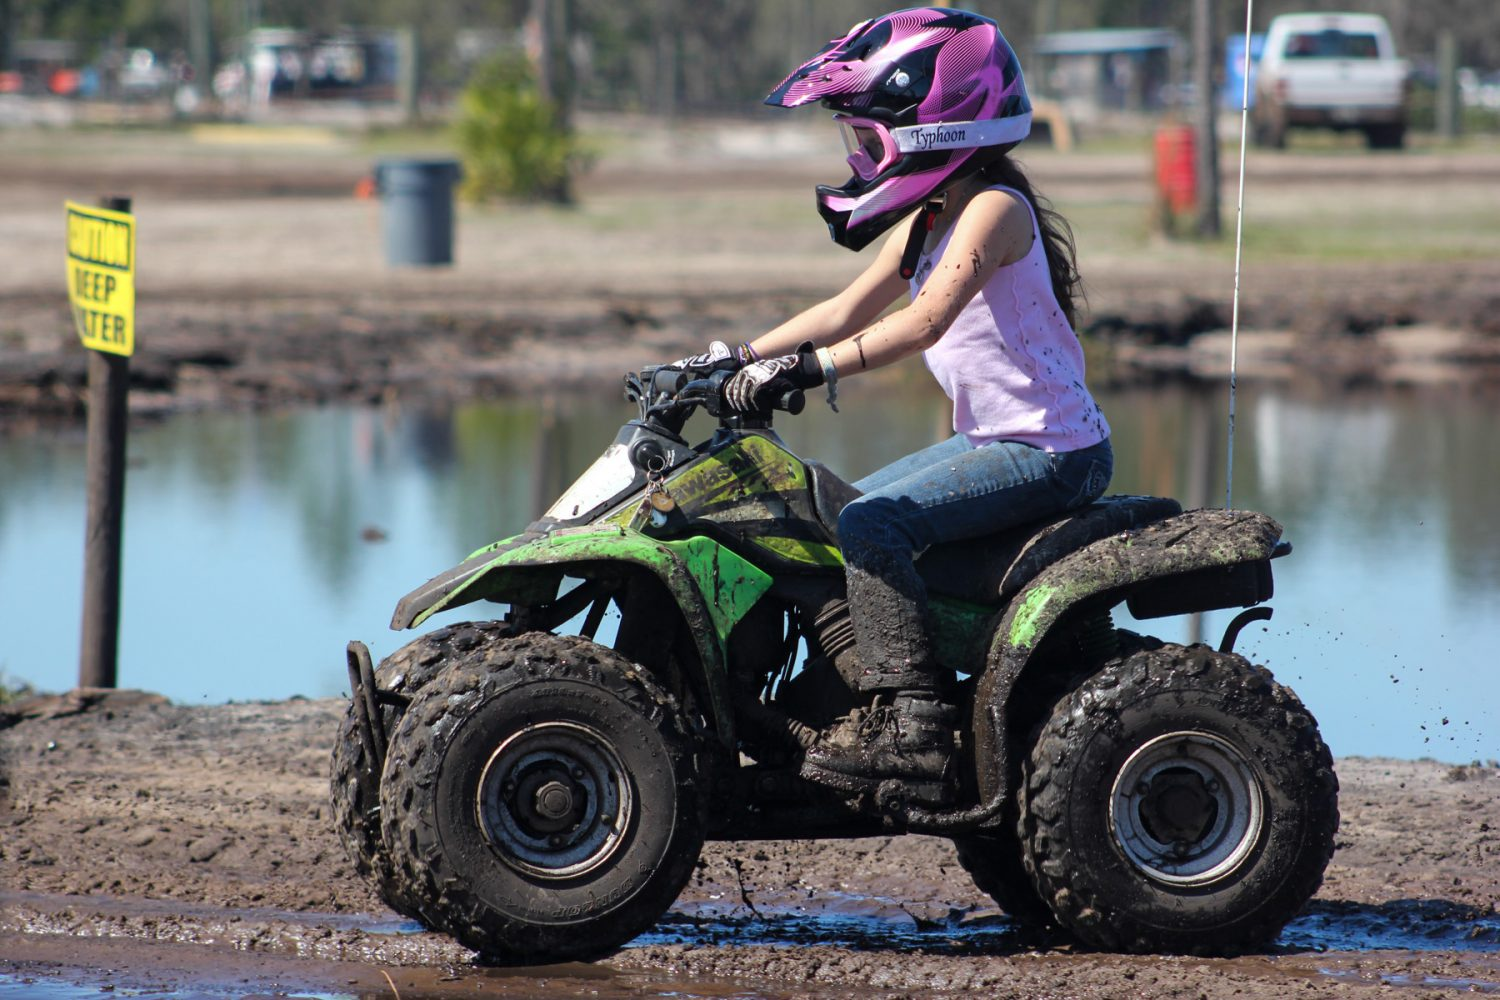 9-year-old Macy Rossiter of Greco, Fla. rides her four-wheeler through the woods on the Hog Waller property on Sunday afternoon, March 2, 2014.